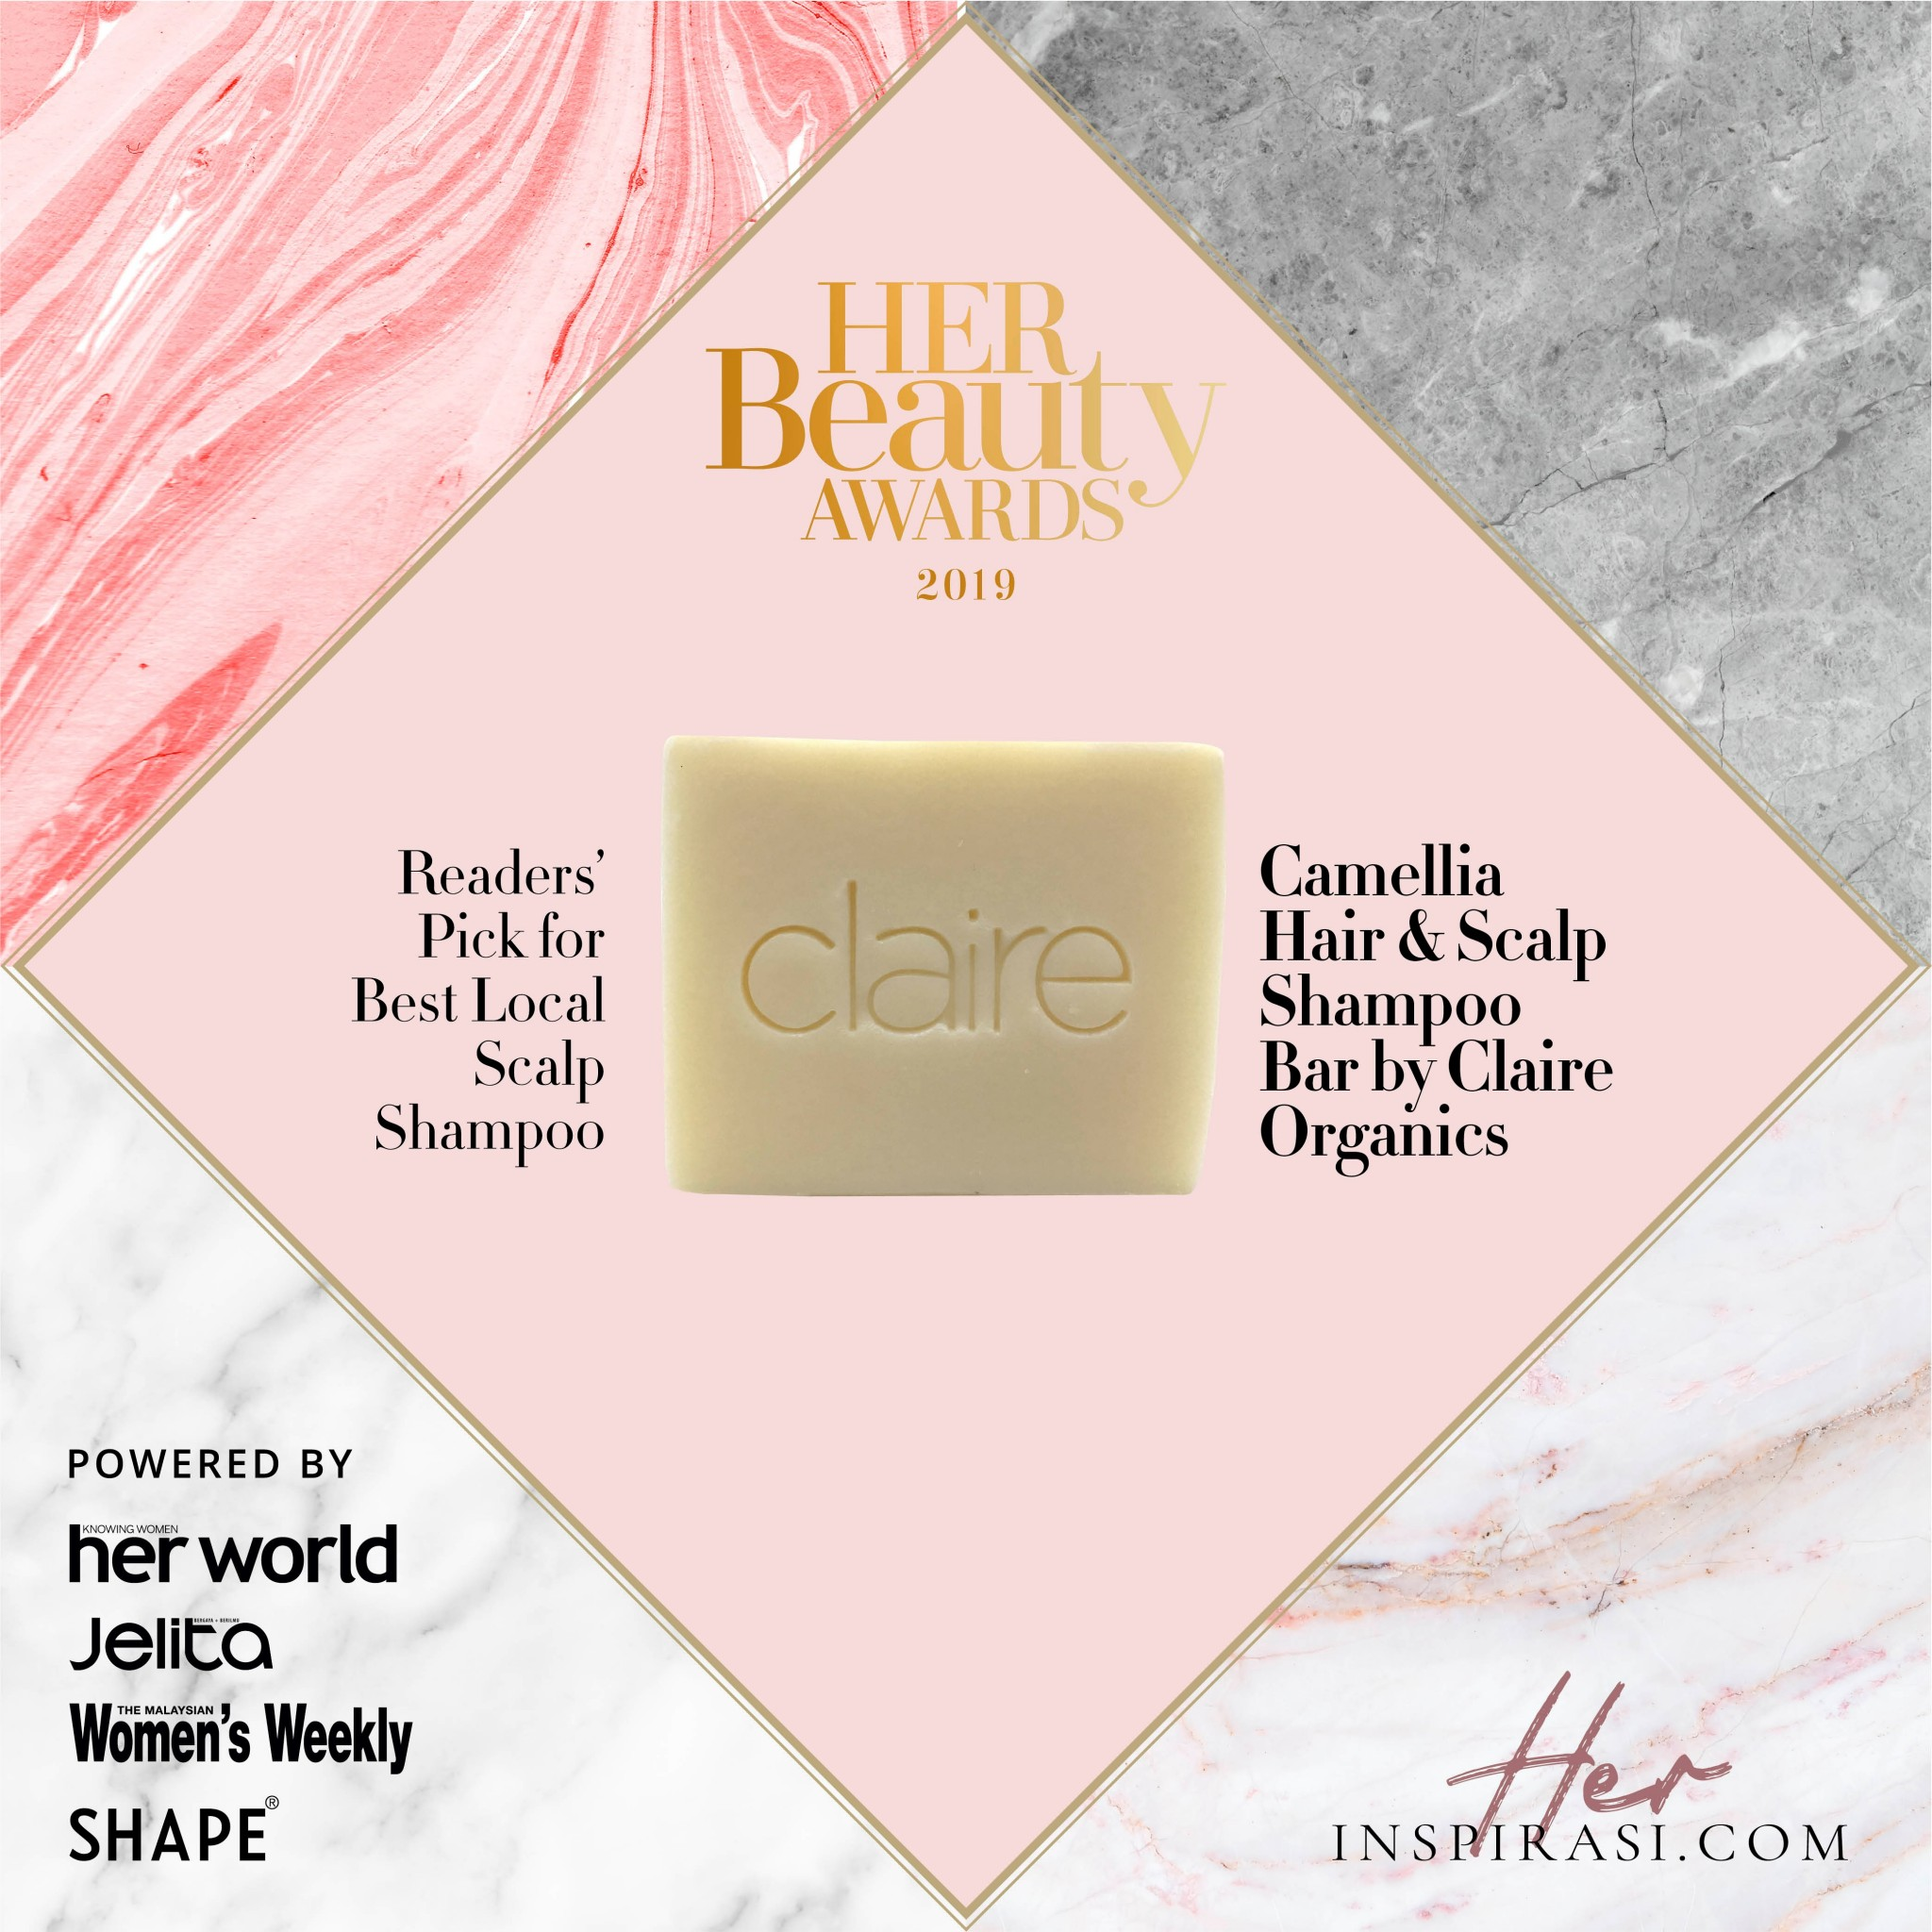 Claire Organics Award @ Best Hair & Scalp Shampoo Bar